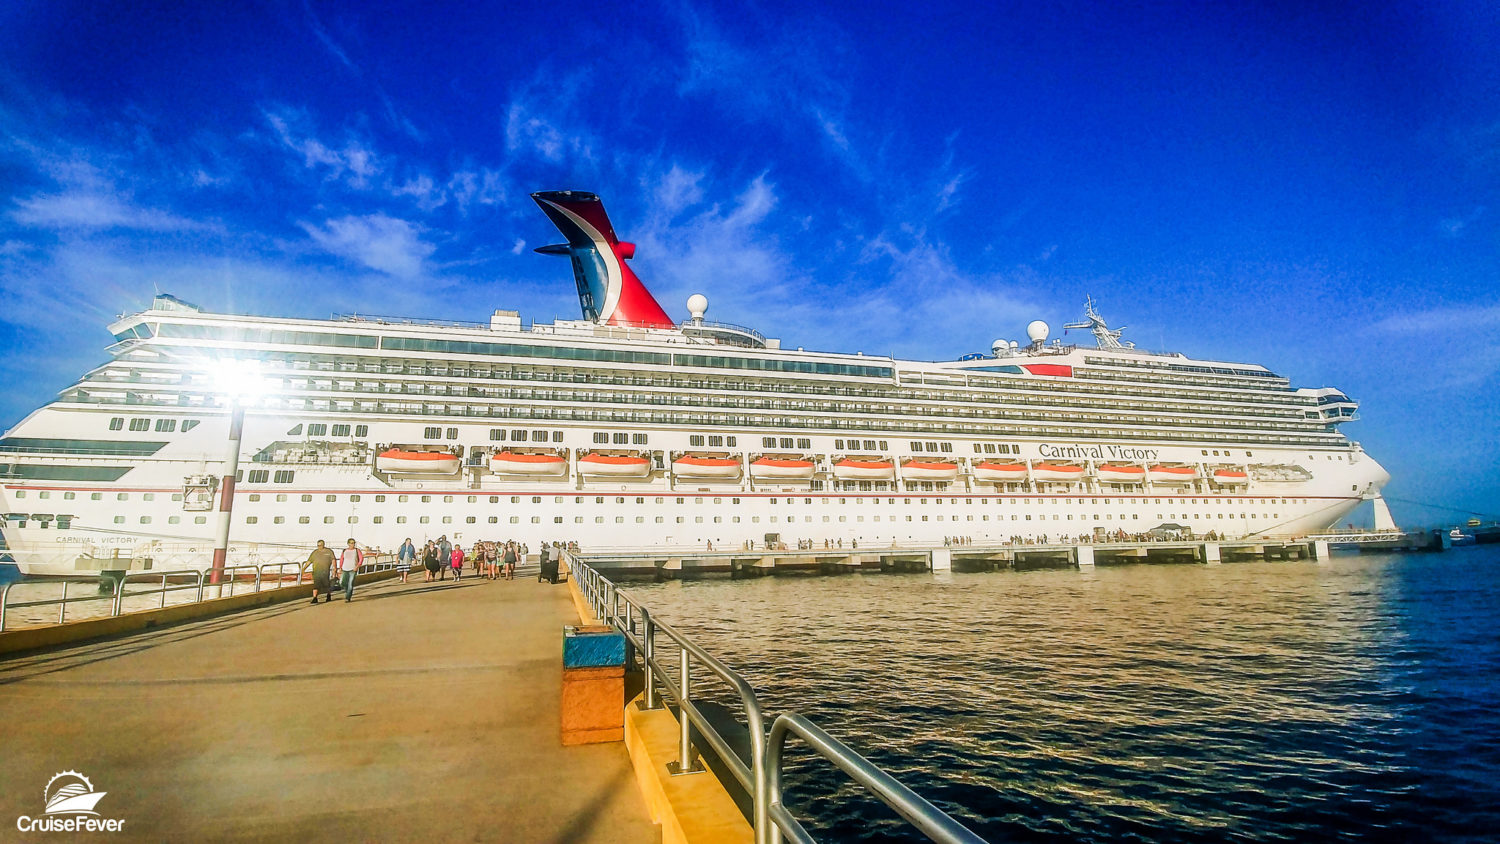 FEATURED CRUISES FROM JACKSONVILLE PORT